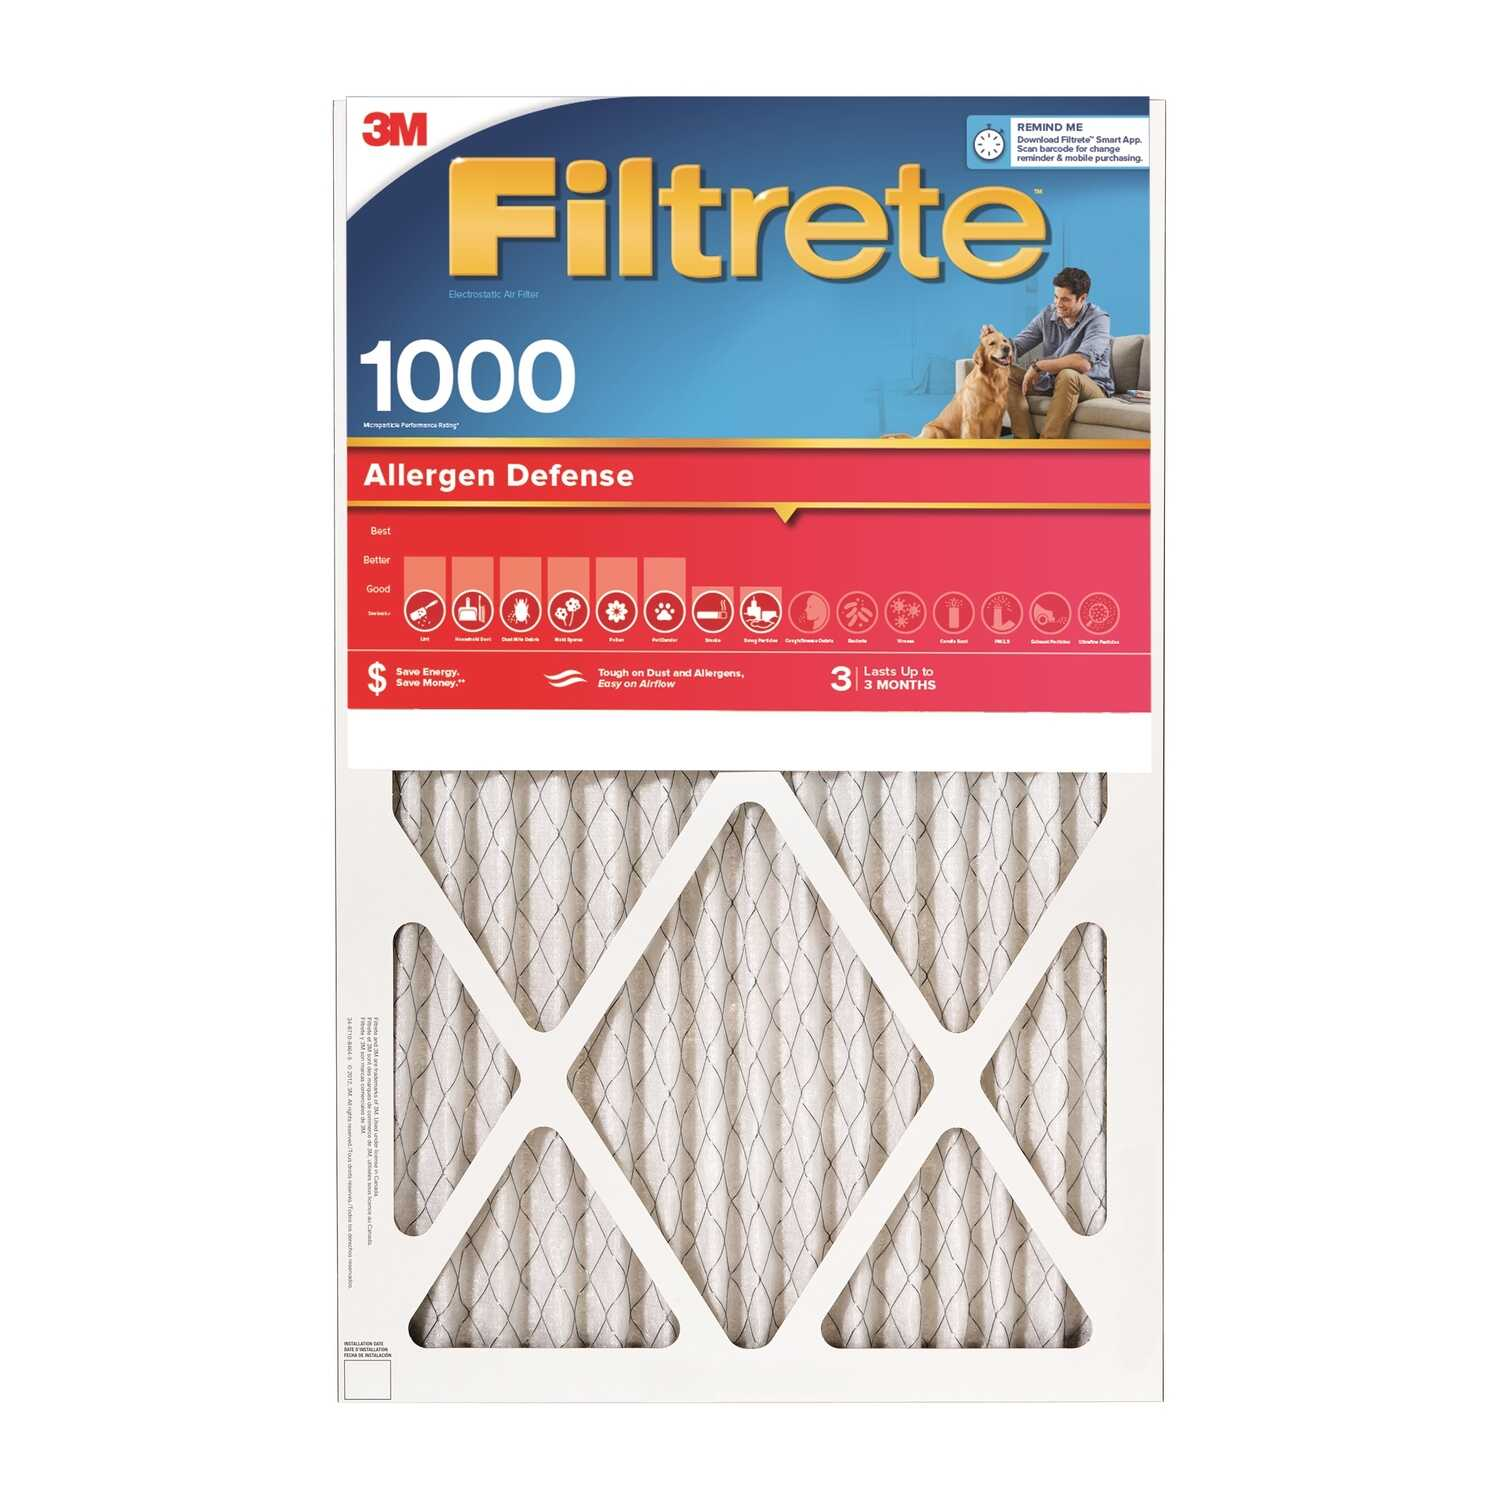 3M  Filtrete  30 in. H x 24 in. W x 1 in. D Air Filter